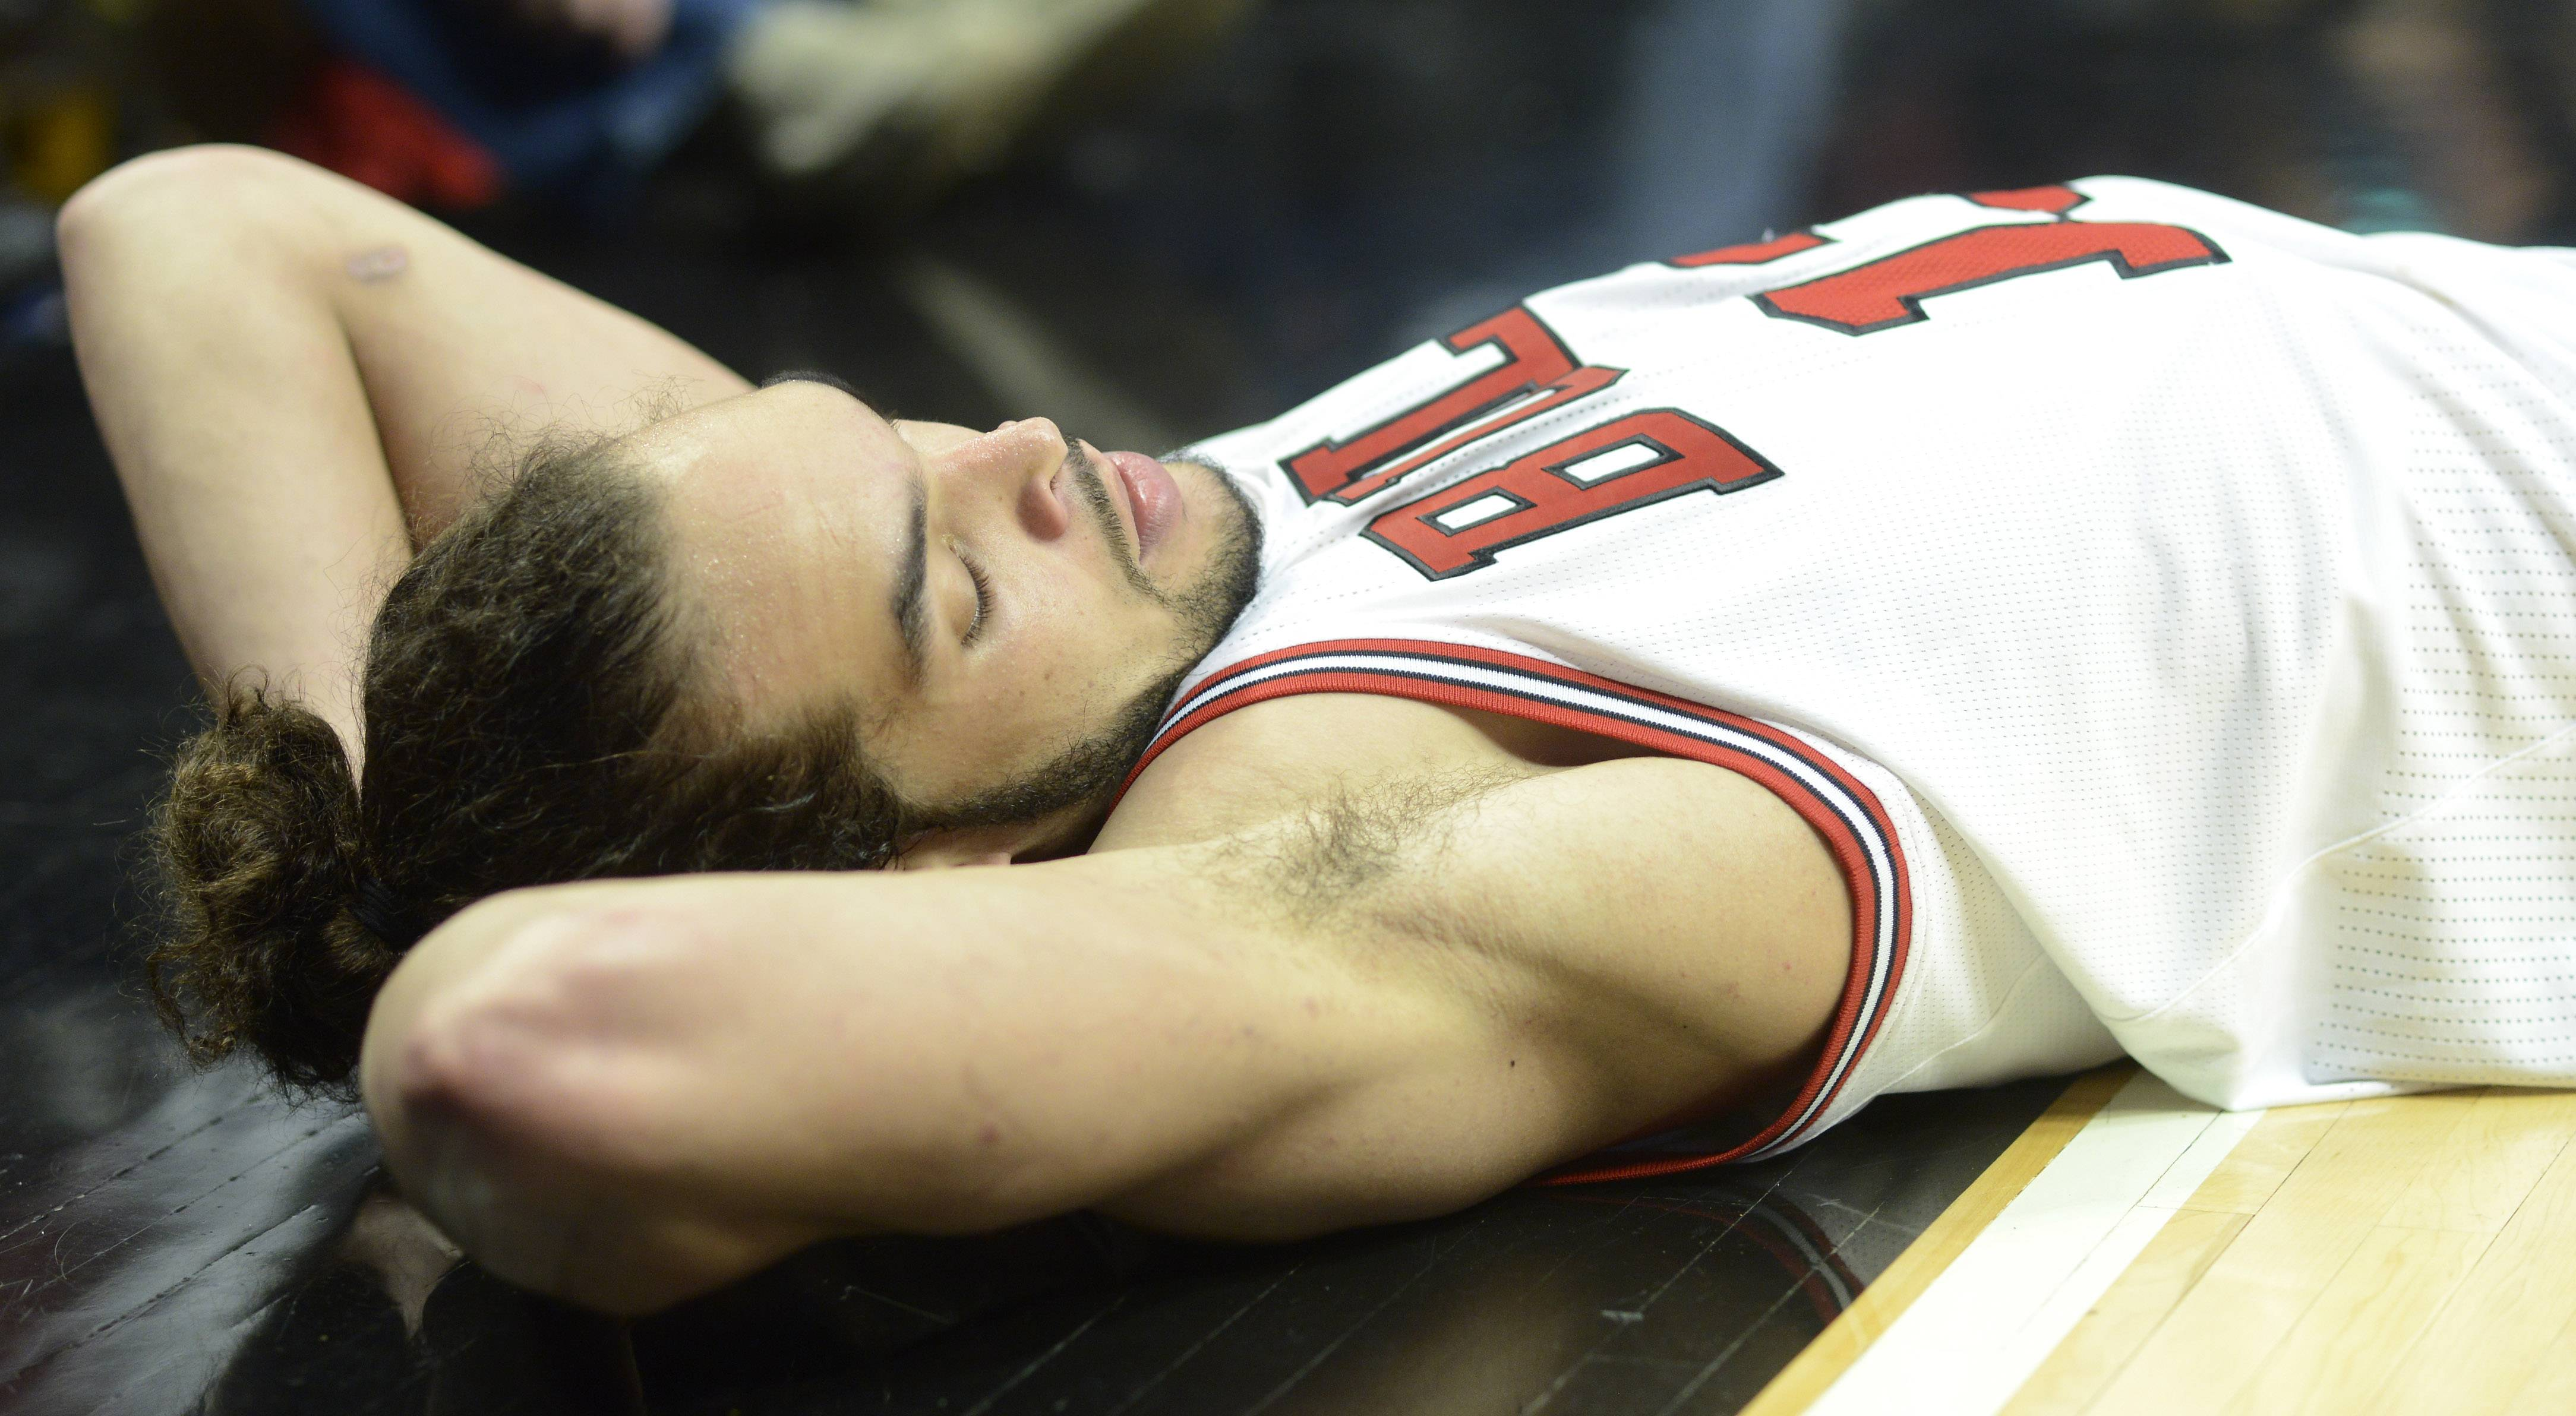 Joakim Noah of the Chicago Bulls lays on the floor in frustration after hustling for the ball, but passing it out-of-bounds in Game 6 of the first round playoff game against the Brooklyn Nets at the United Center in Chicago, Thursday, May 2, 2013.